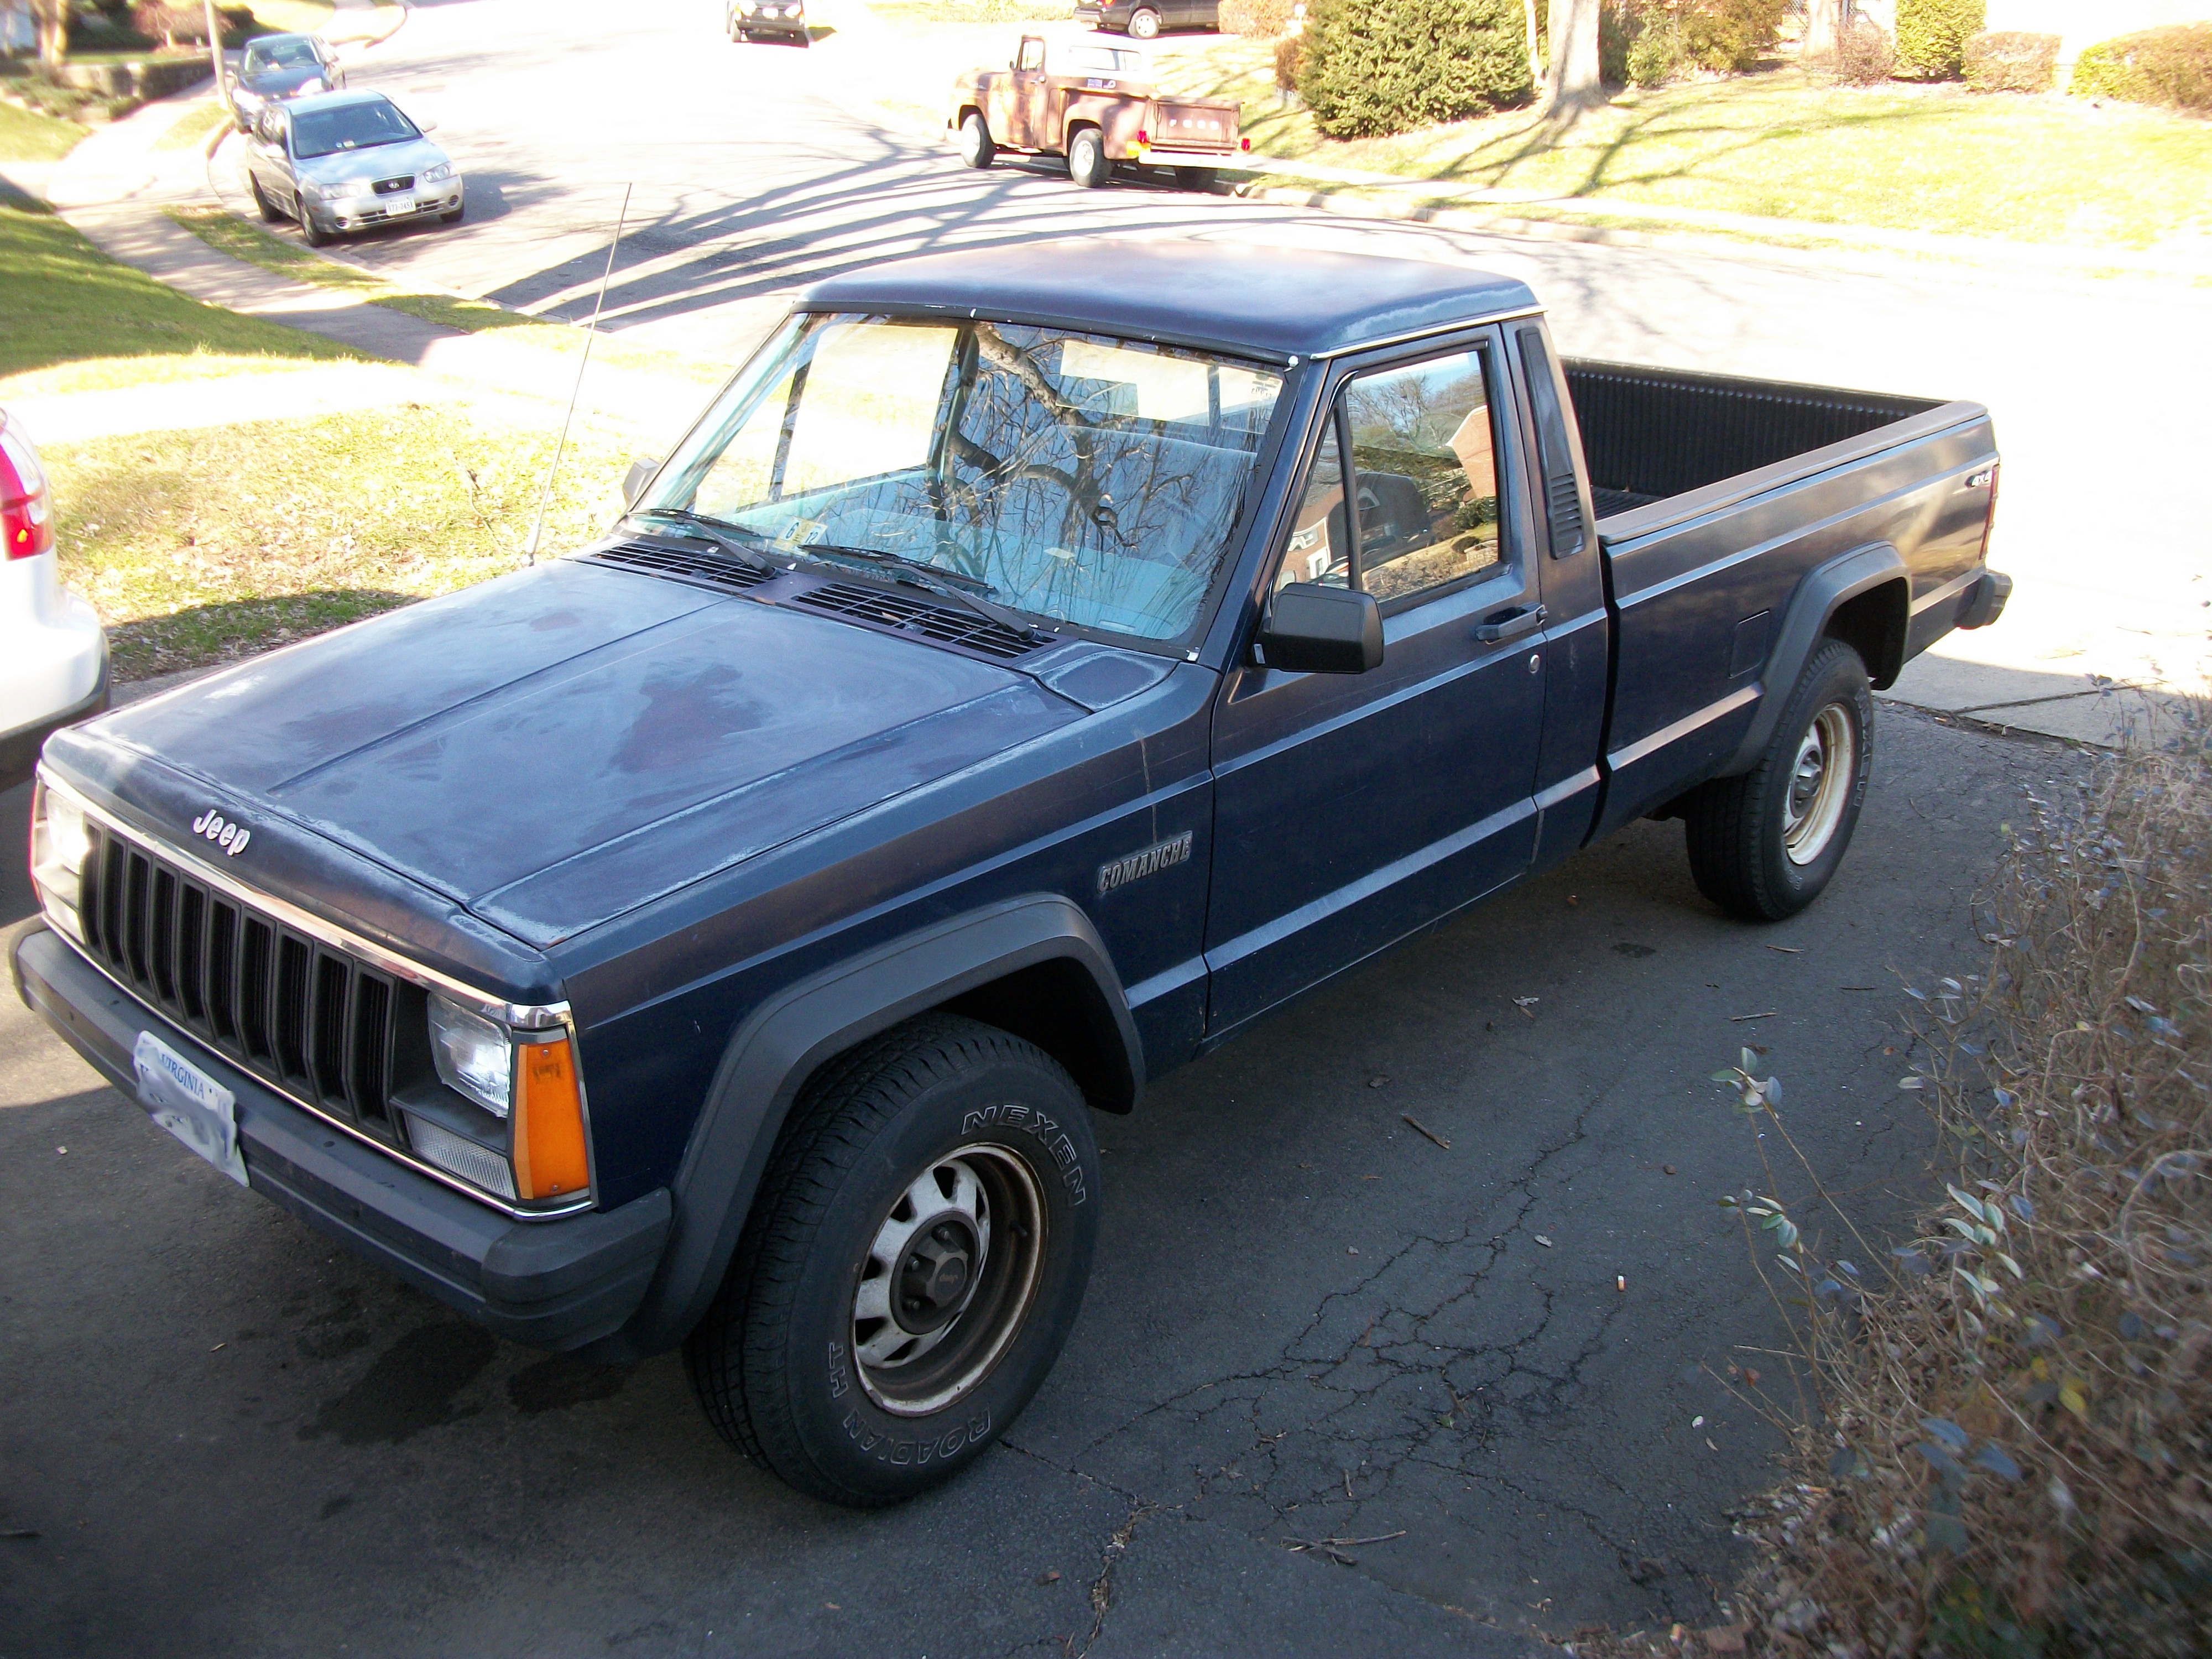 Picture of Jeep Comanche Spare Tire Carrier Repair